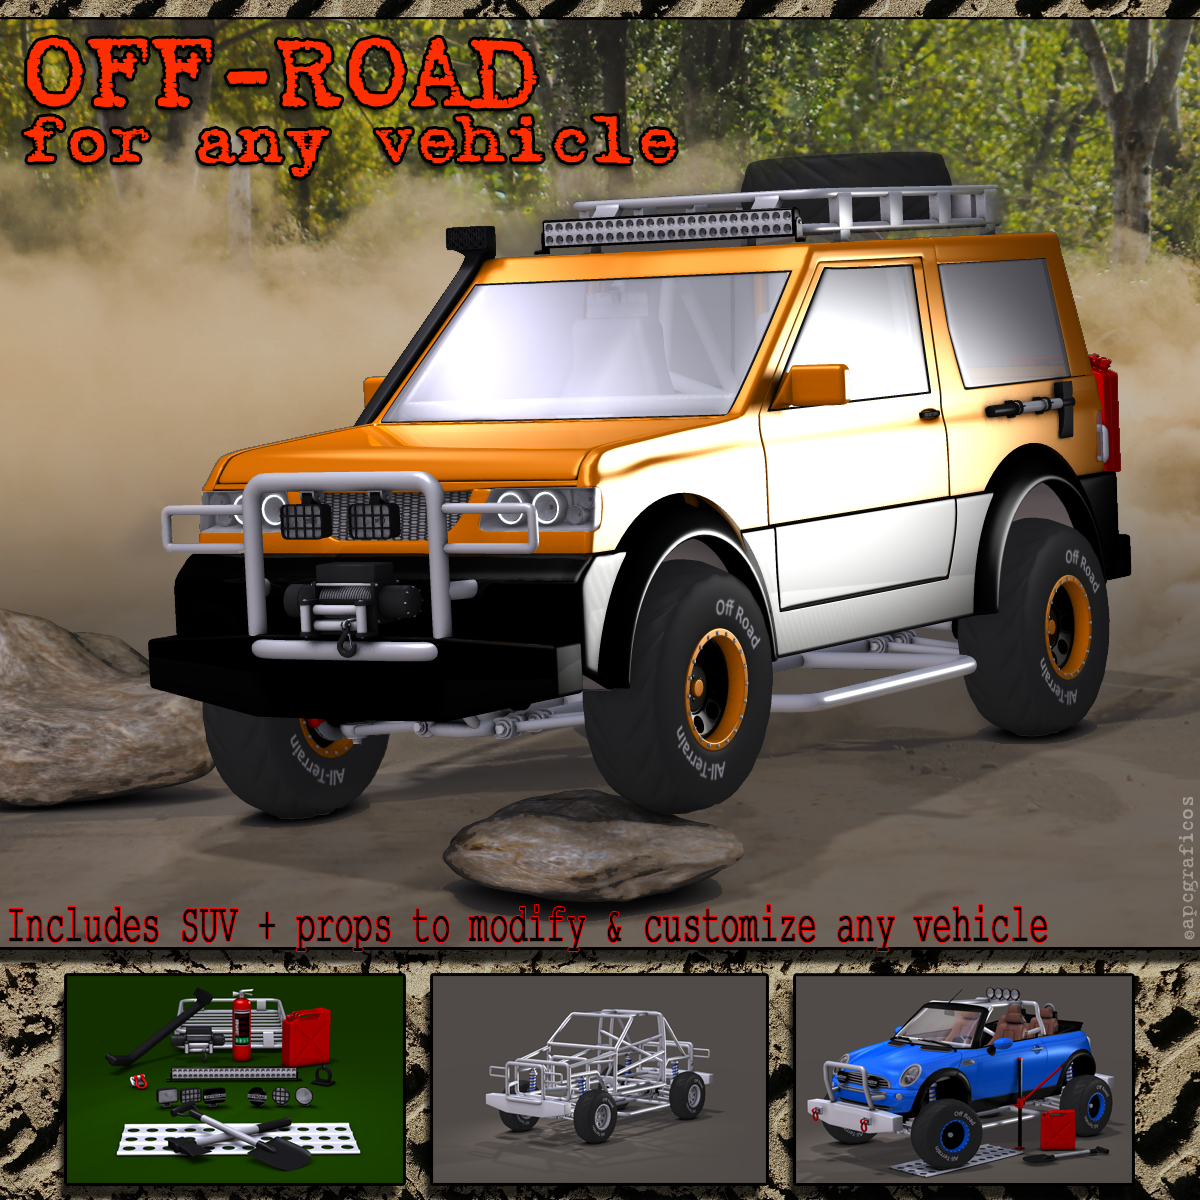 Off-road for any vehicle